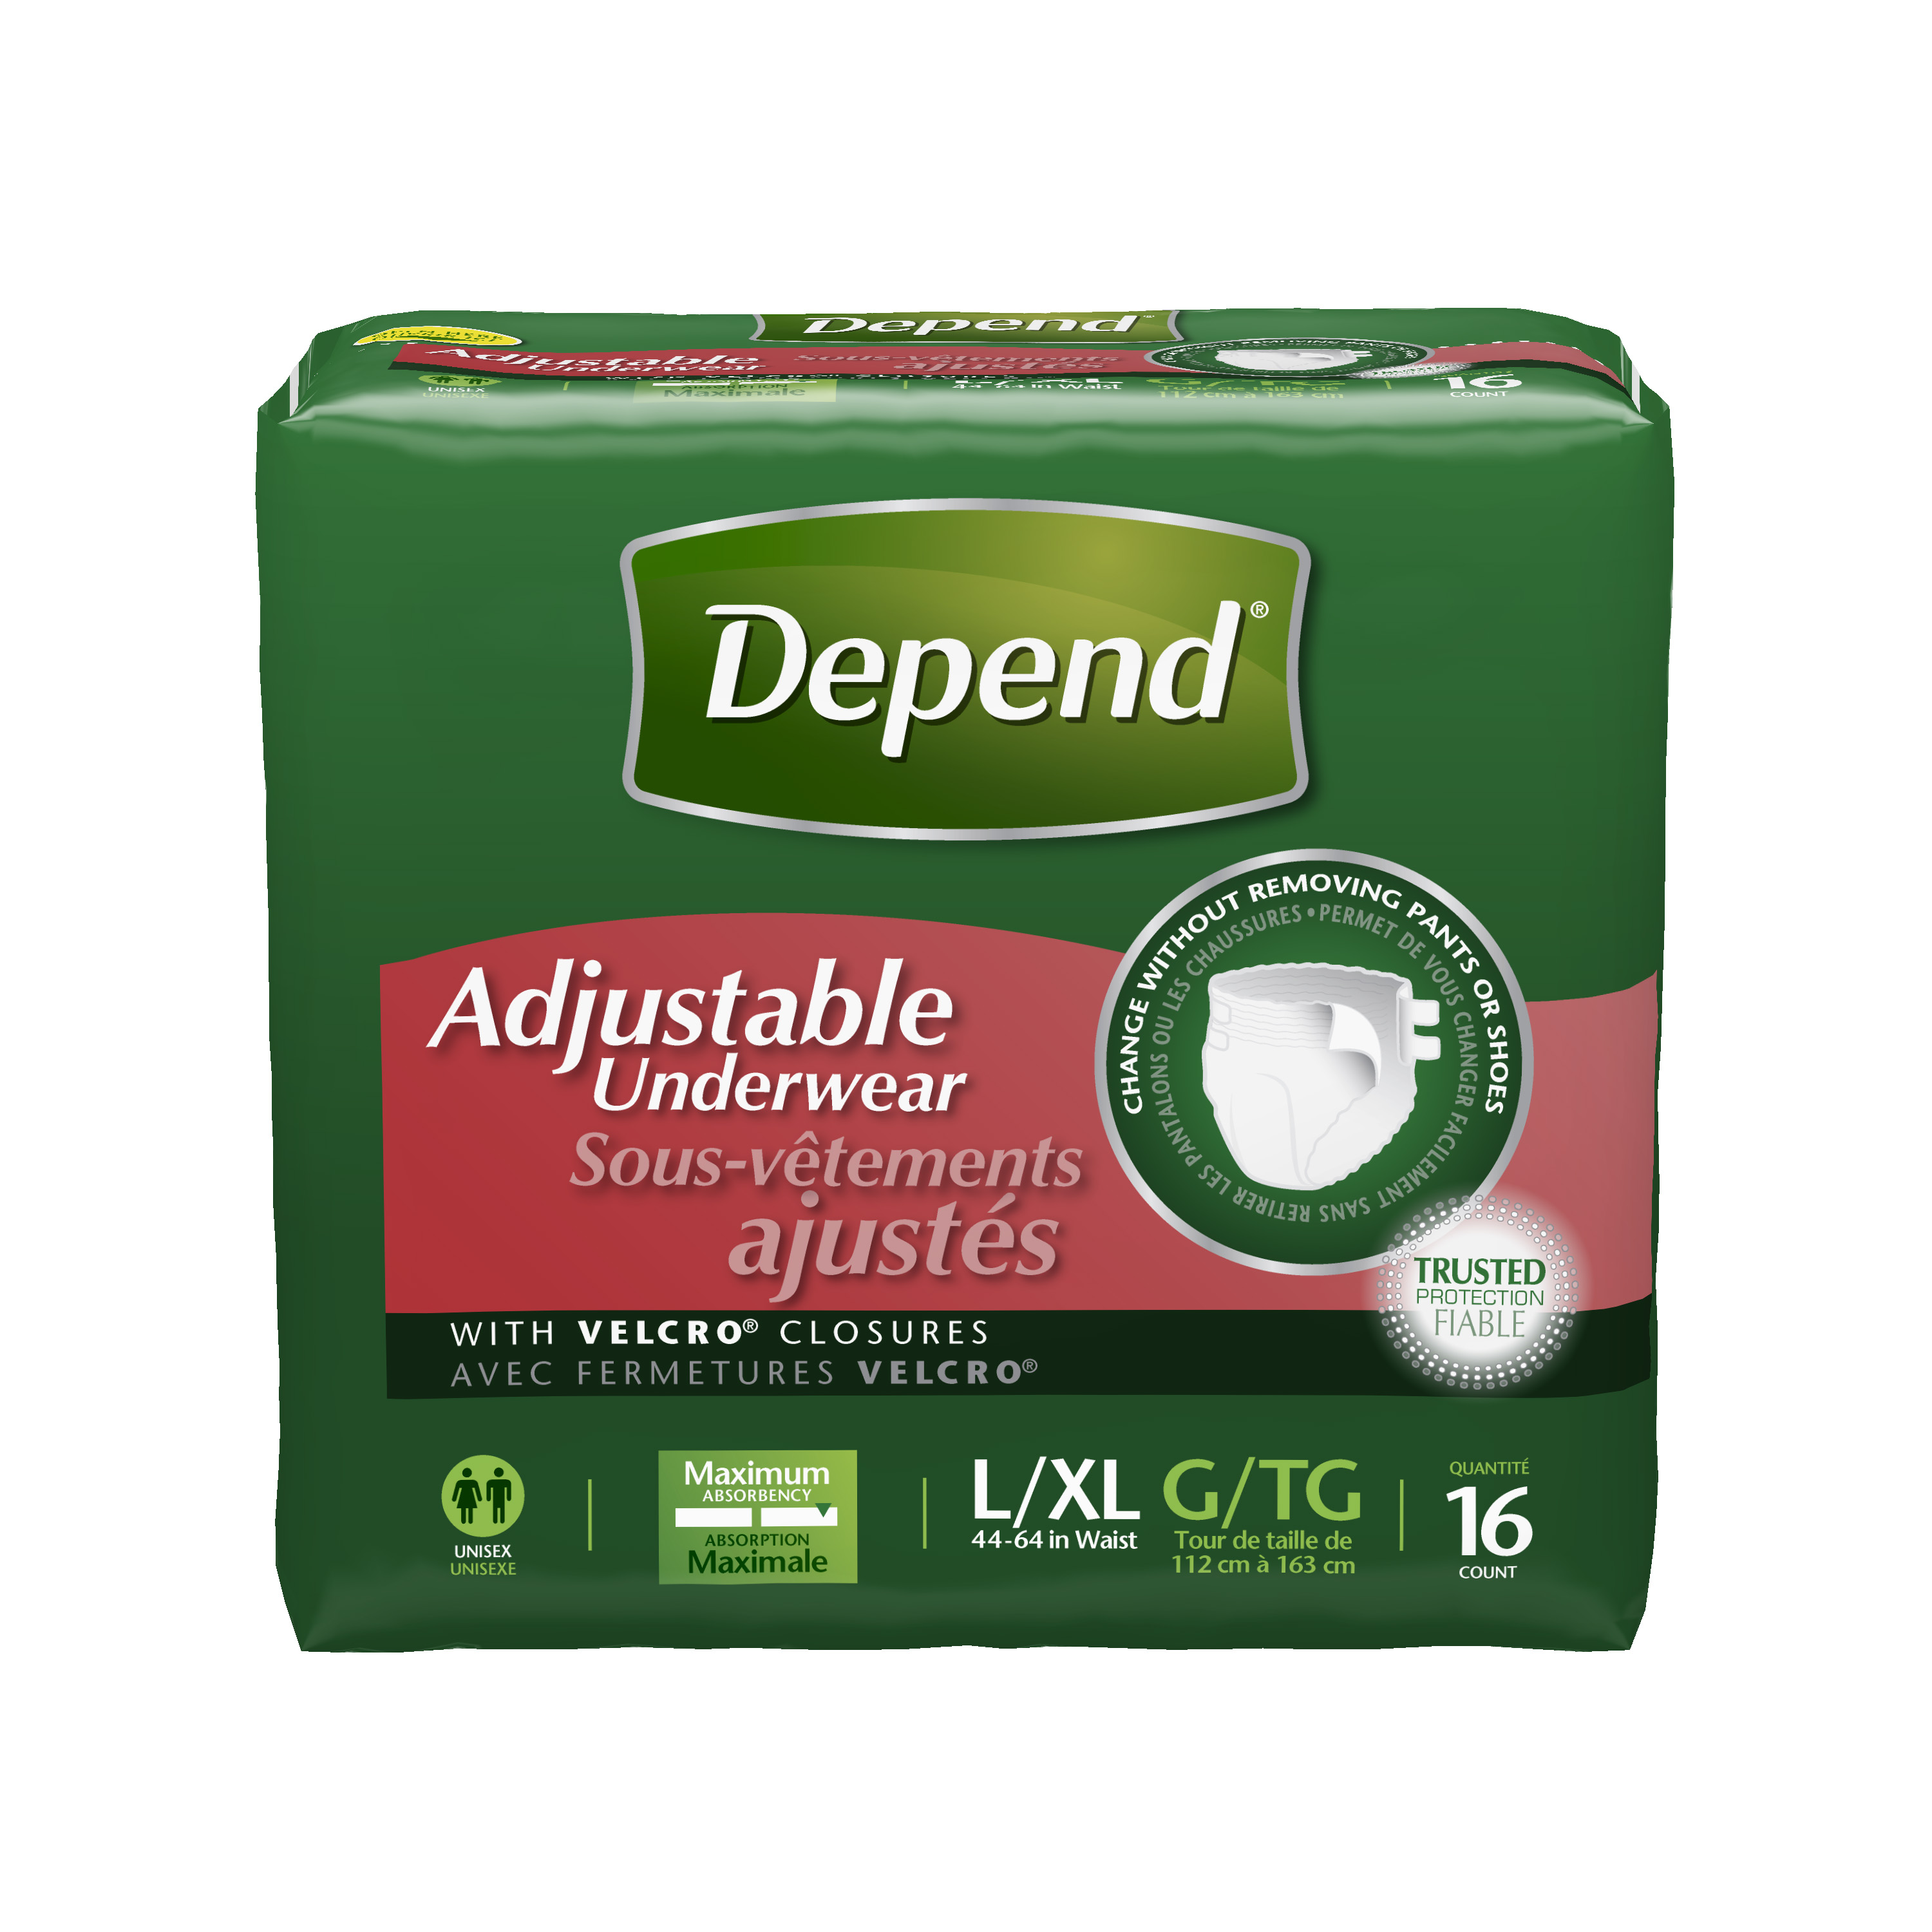 Depend Maximum Absorbency L/XL Adjustable Underwear - 16 CT